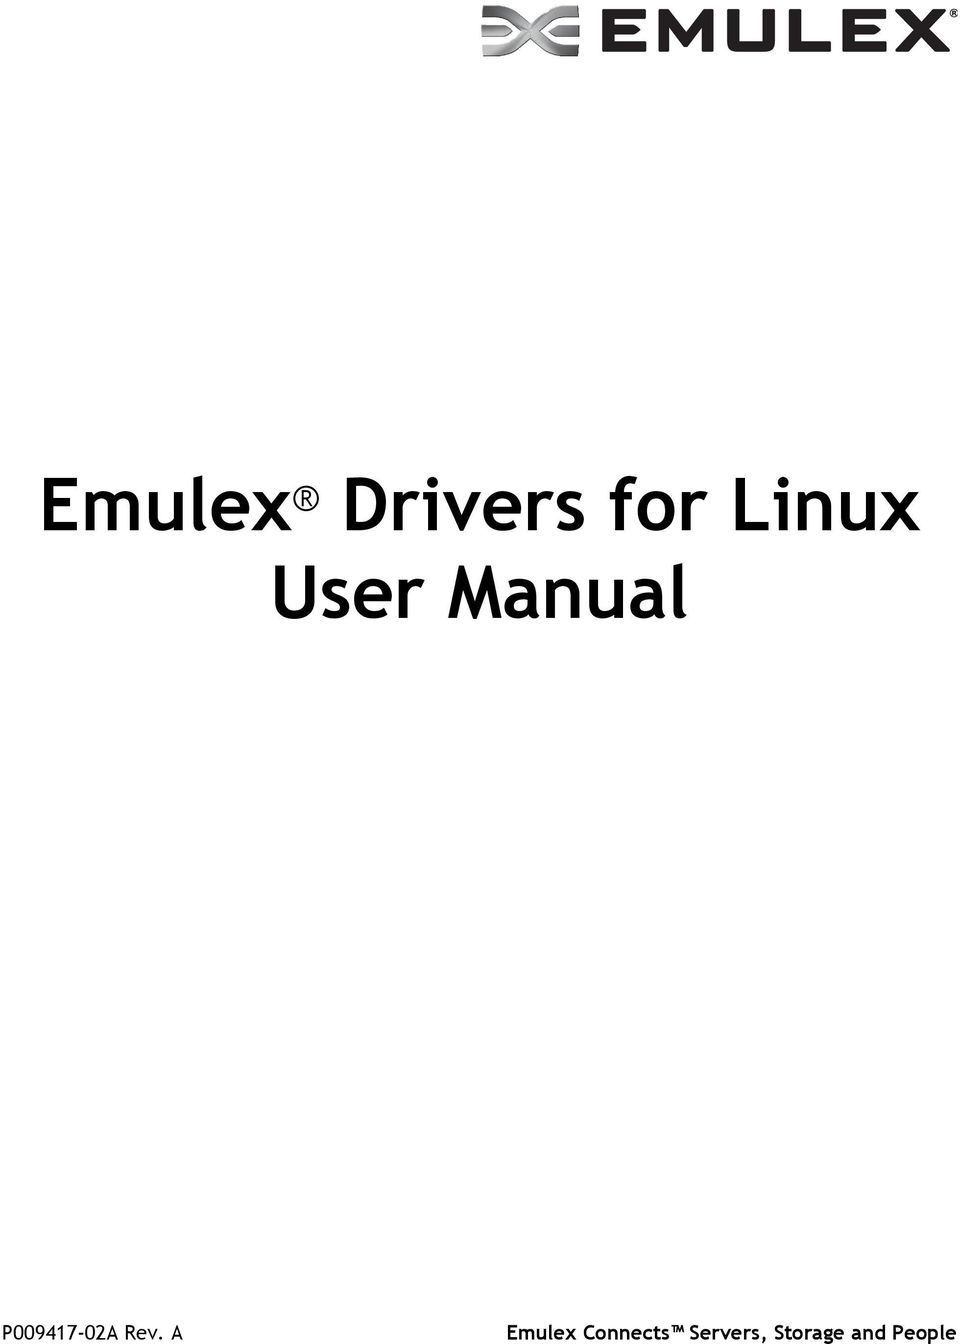 Emulex Connects